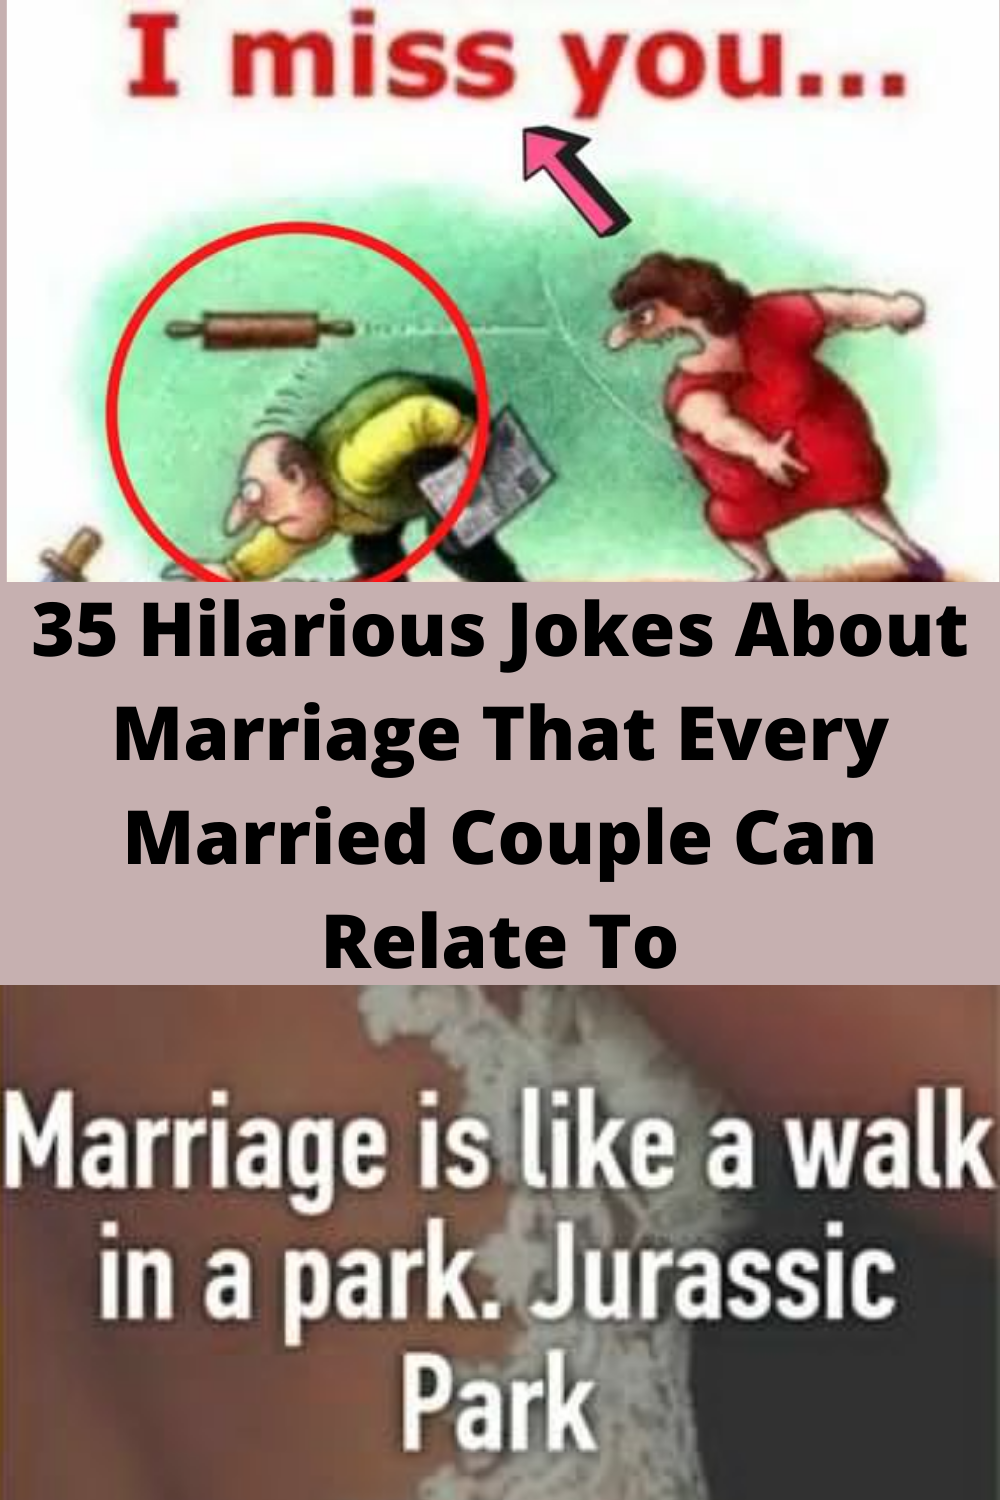 35 Hilarious Jokes About Marriage That Every Married Couple Can Relate To In 2020 Marriage Jokes Jokes Funny Jokes